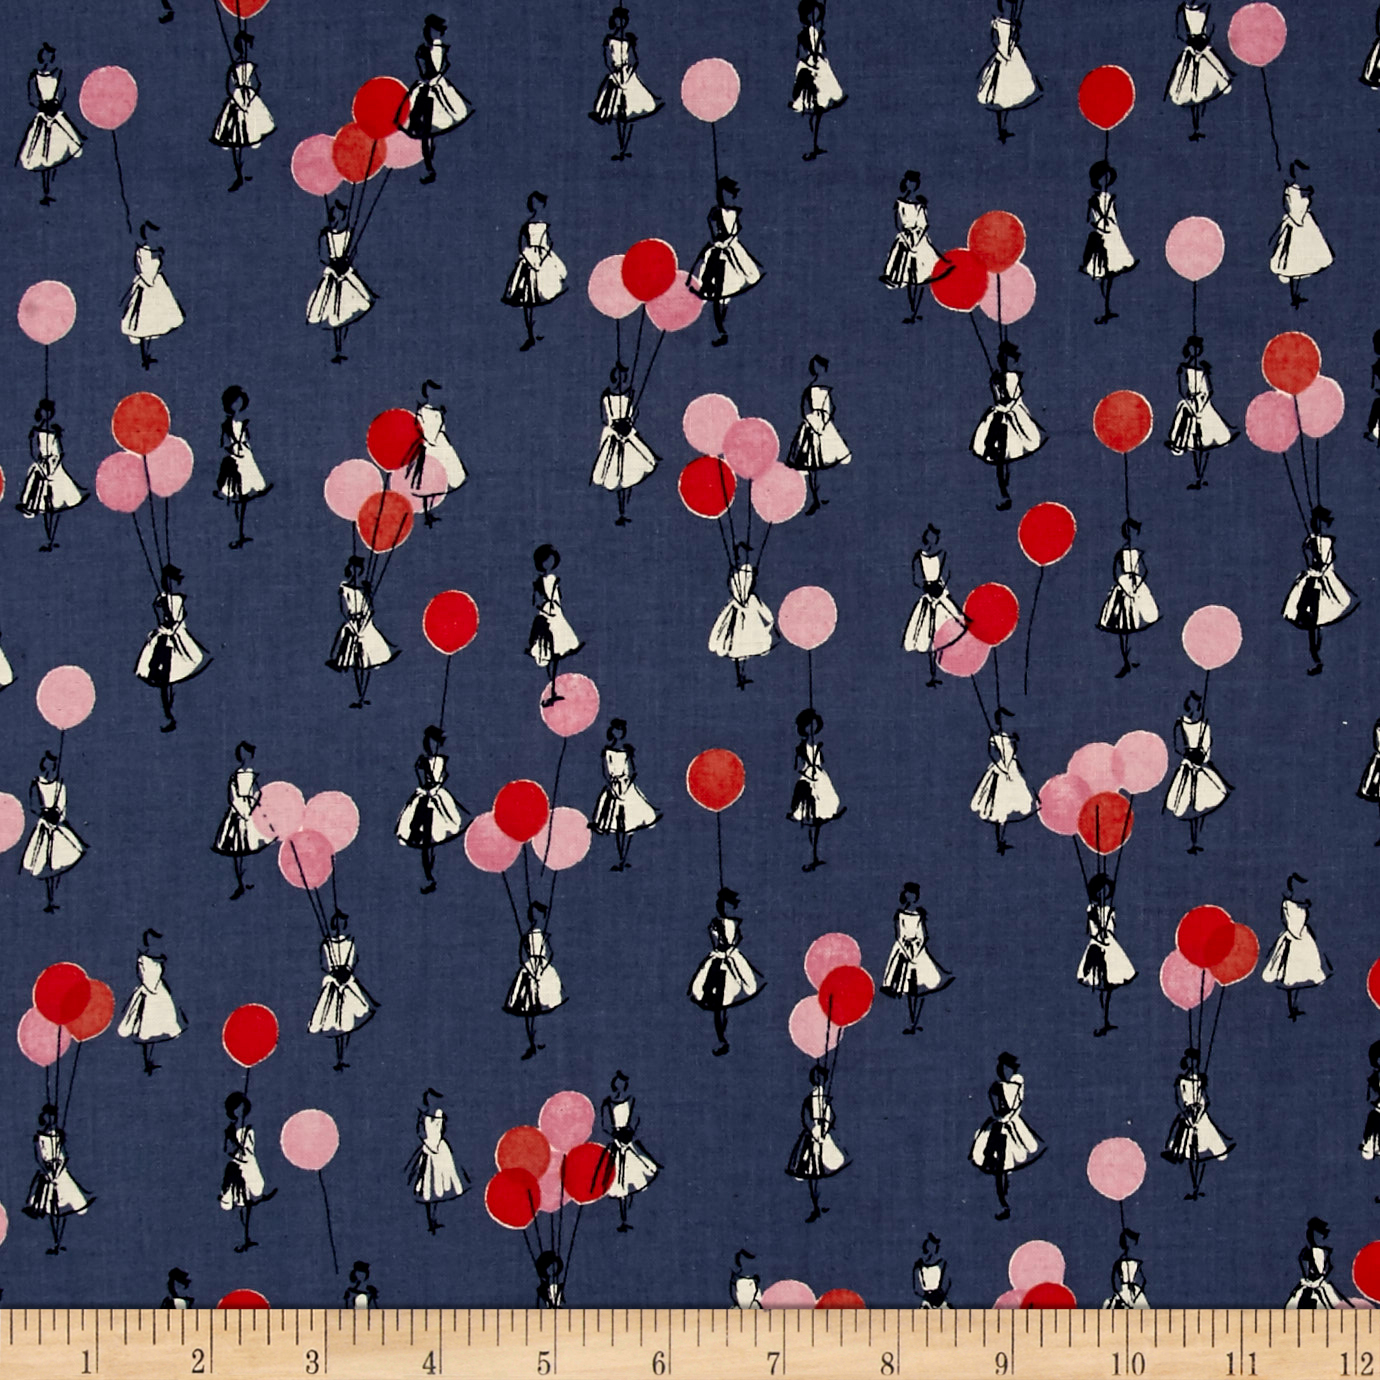 Image of Cotton + Steel Jubilee Balloons Blue Fabric